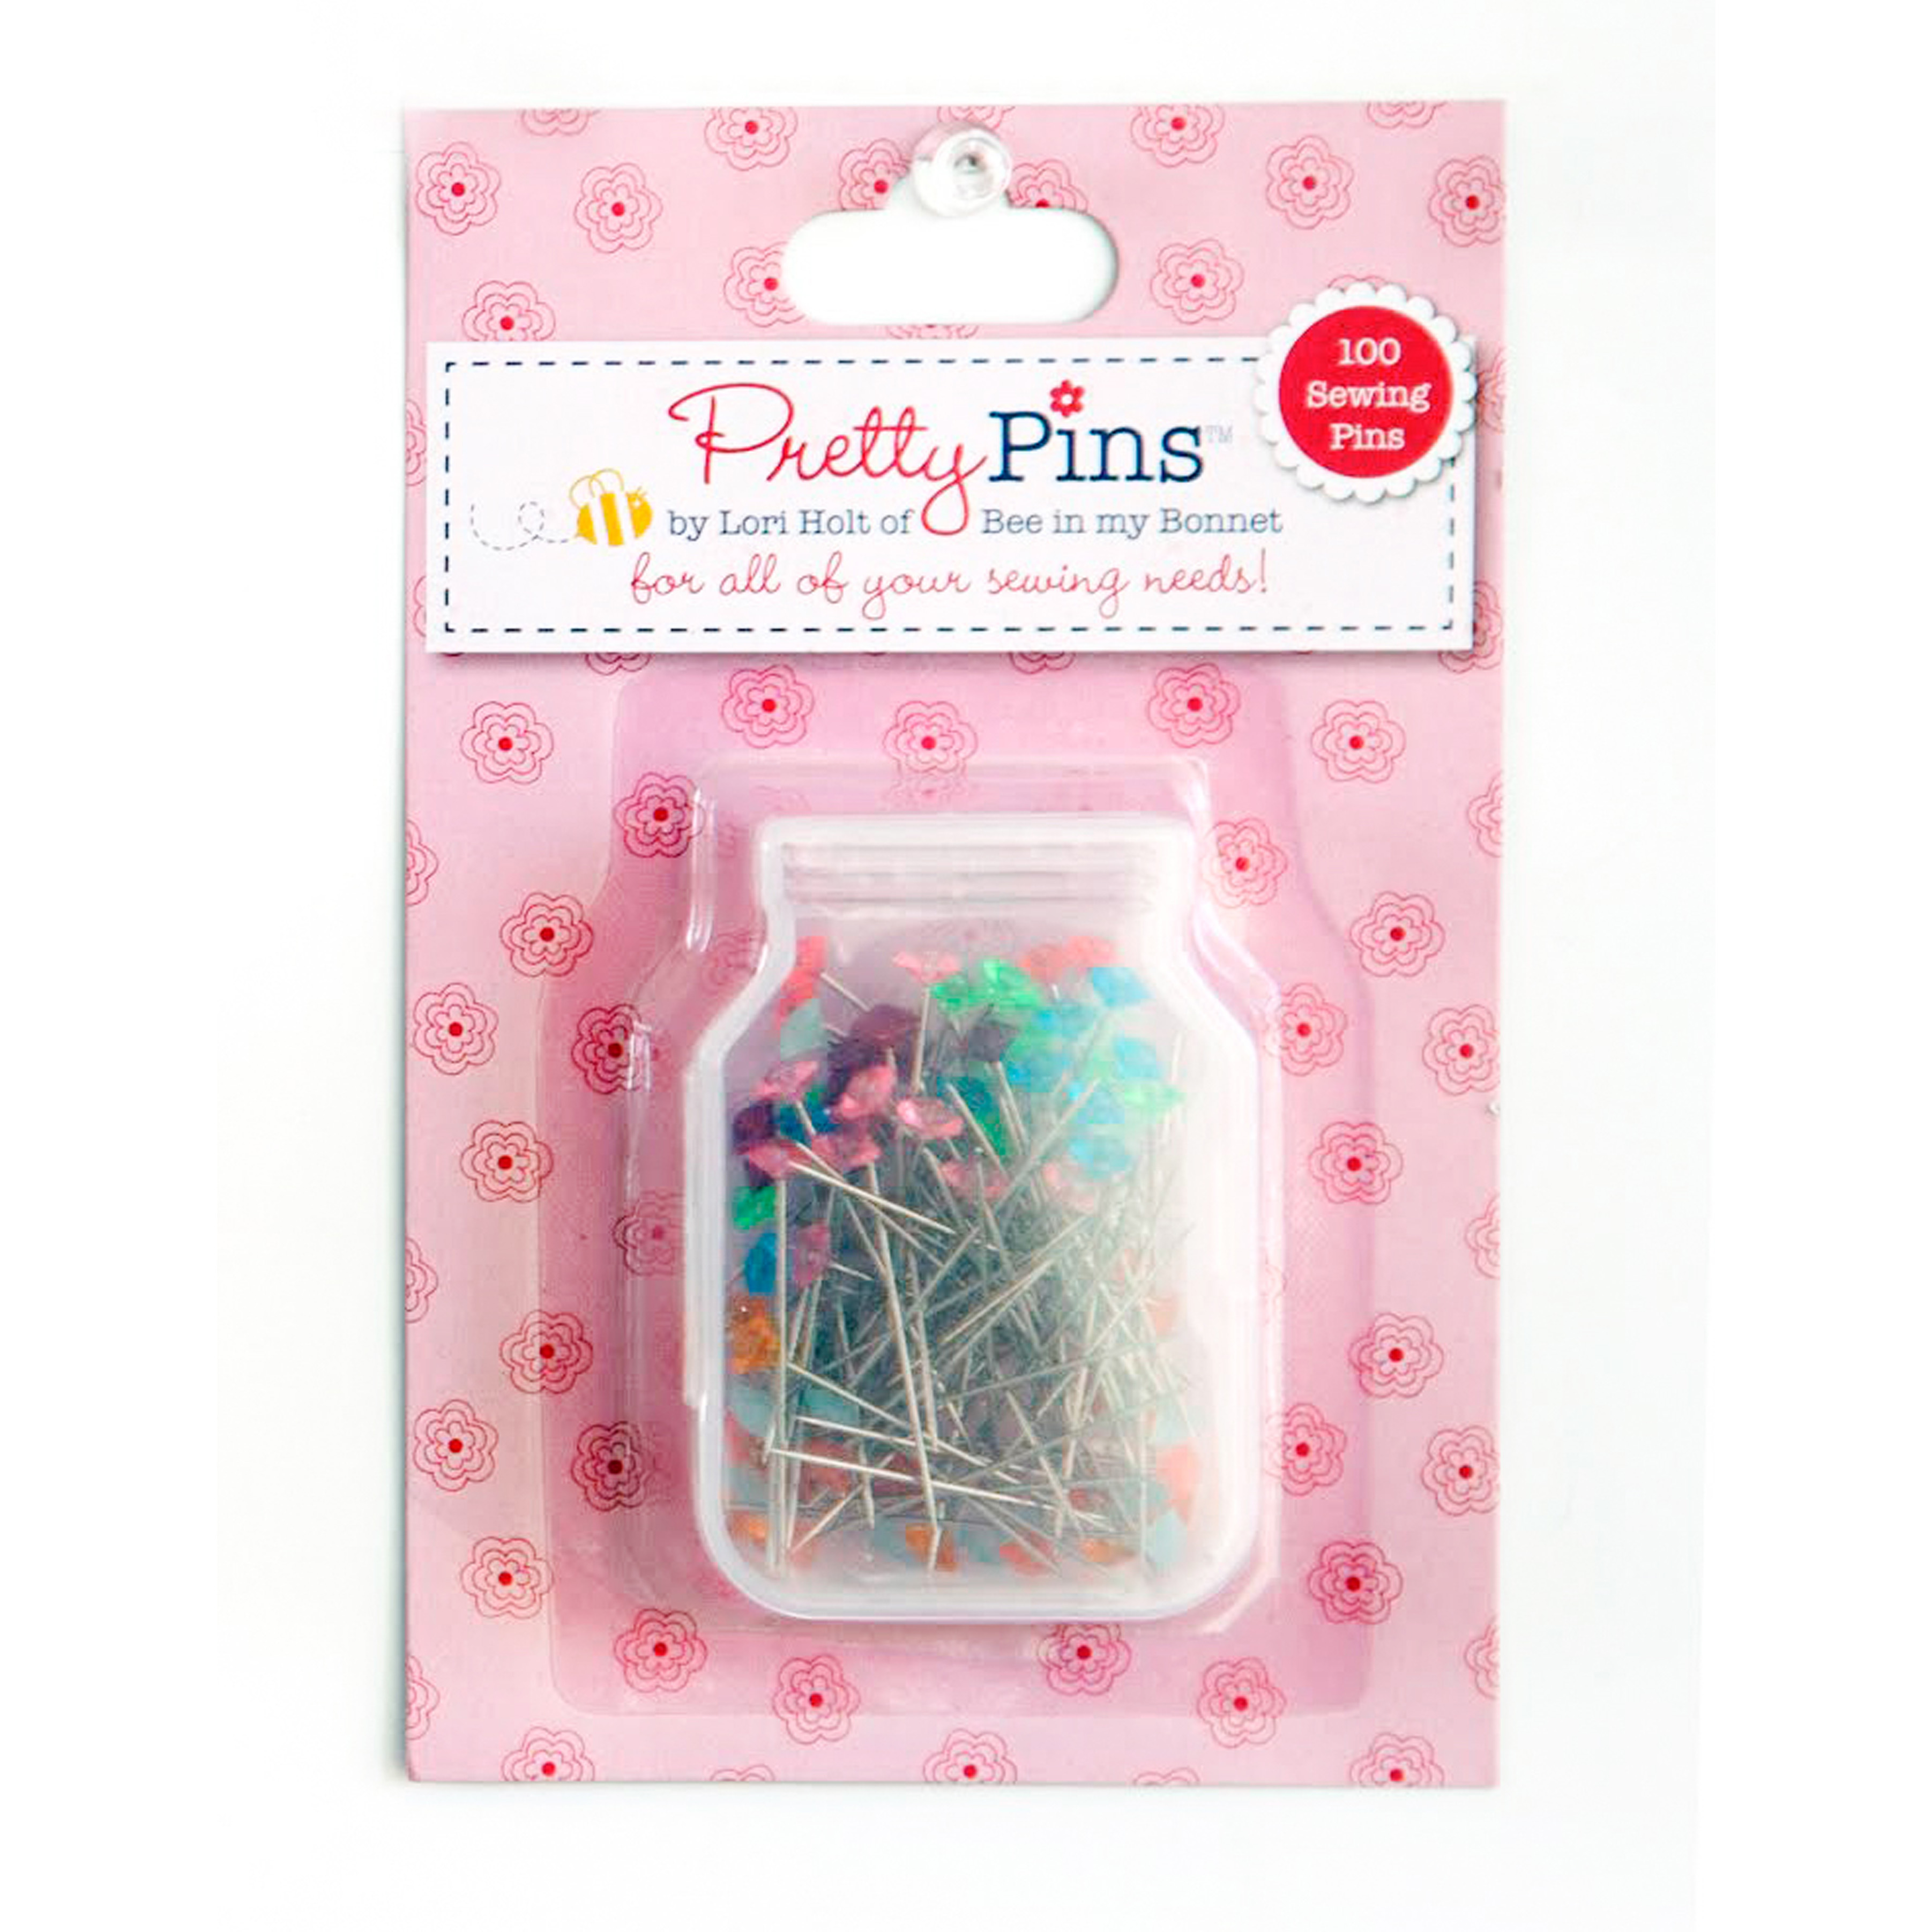 100 Sewing Pins 10 Assorted Colors